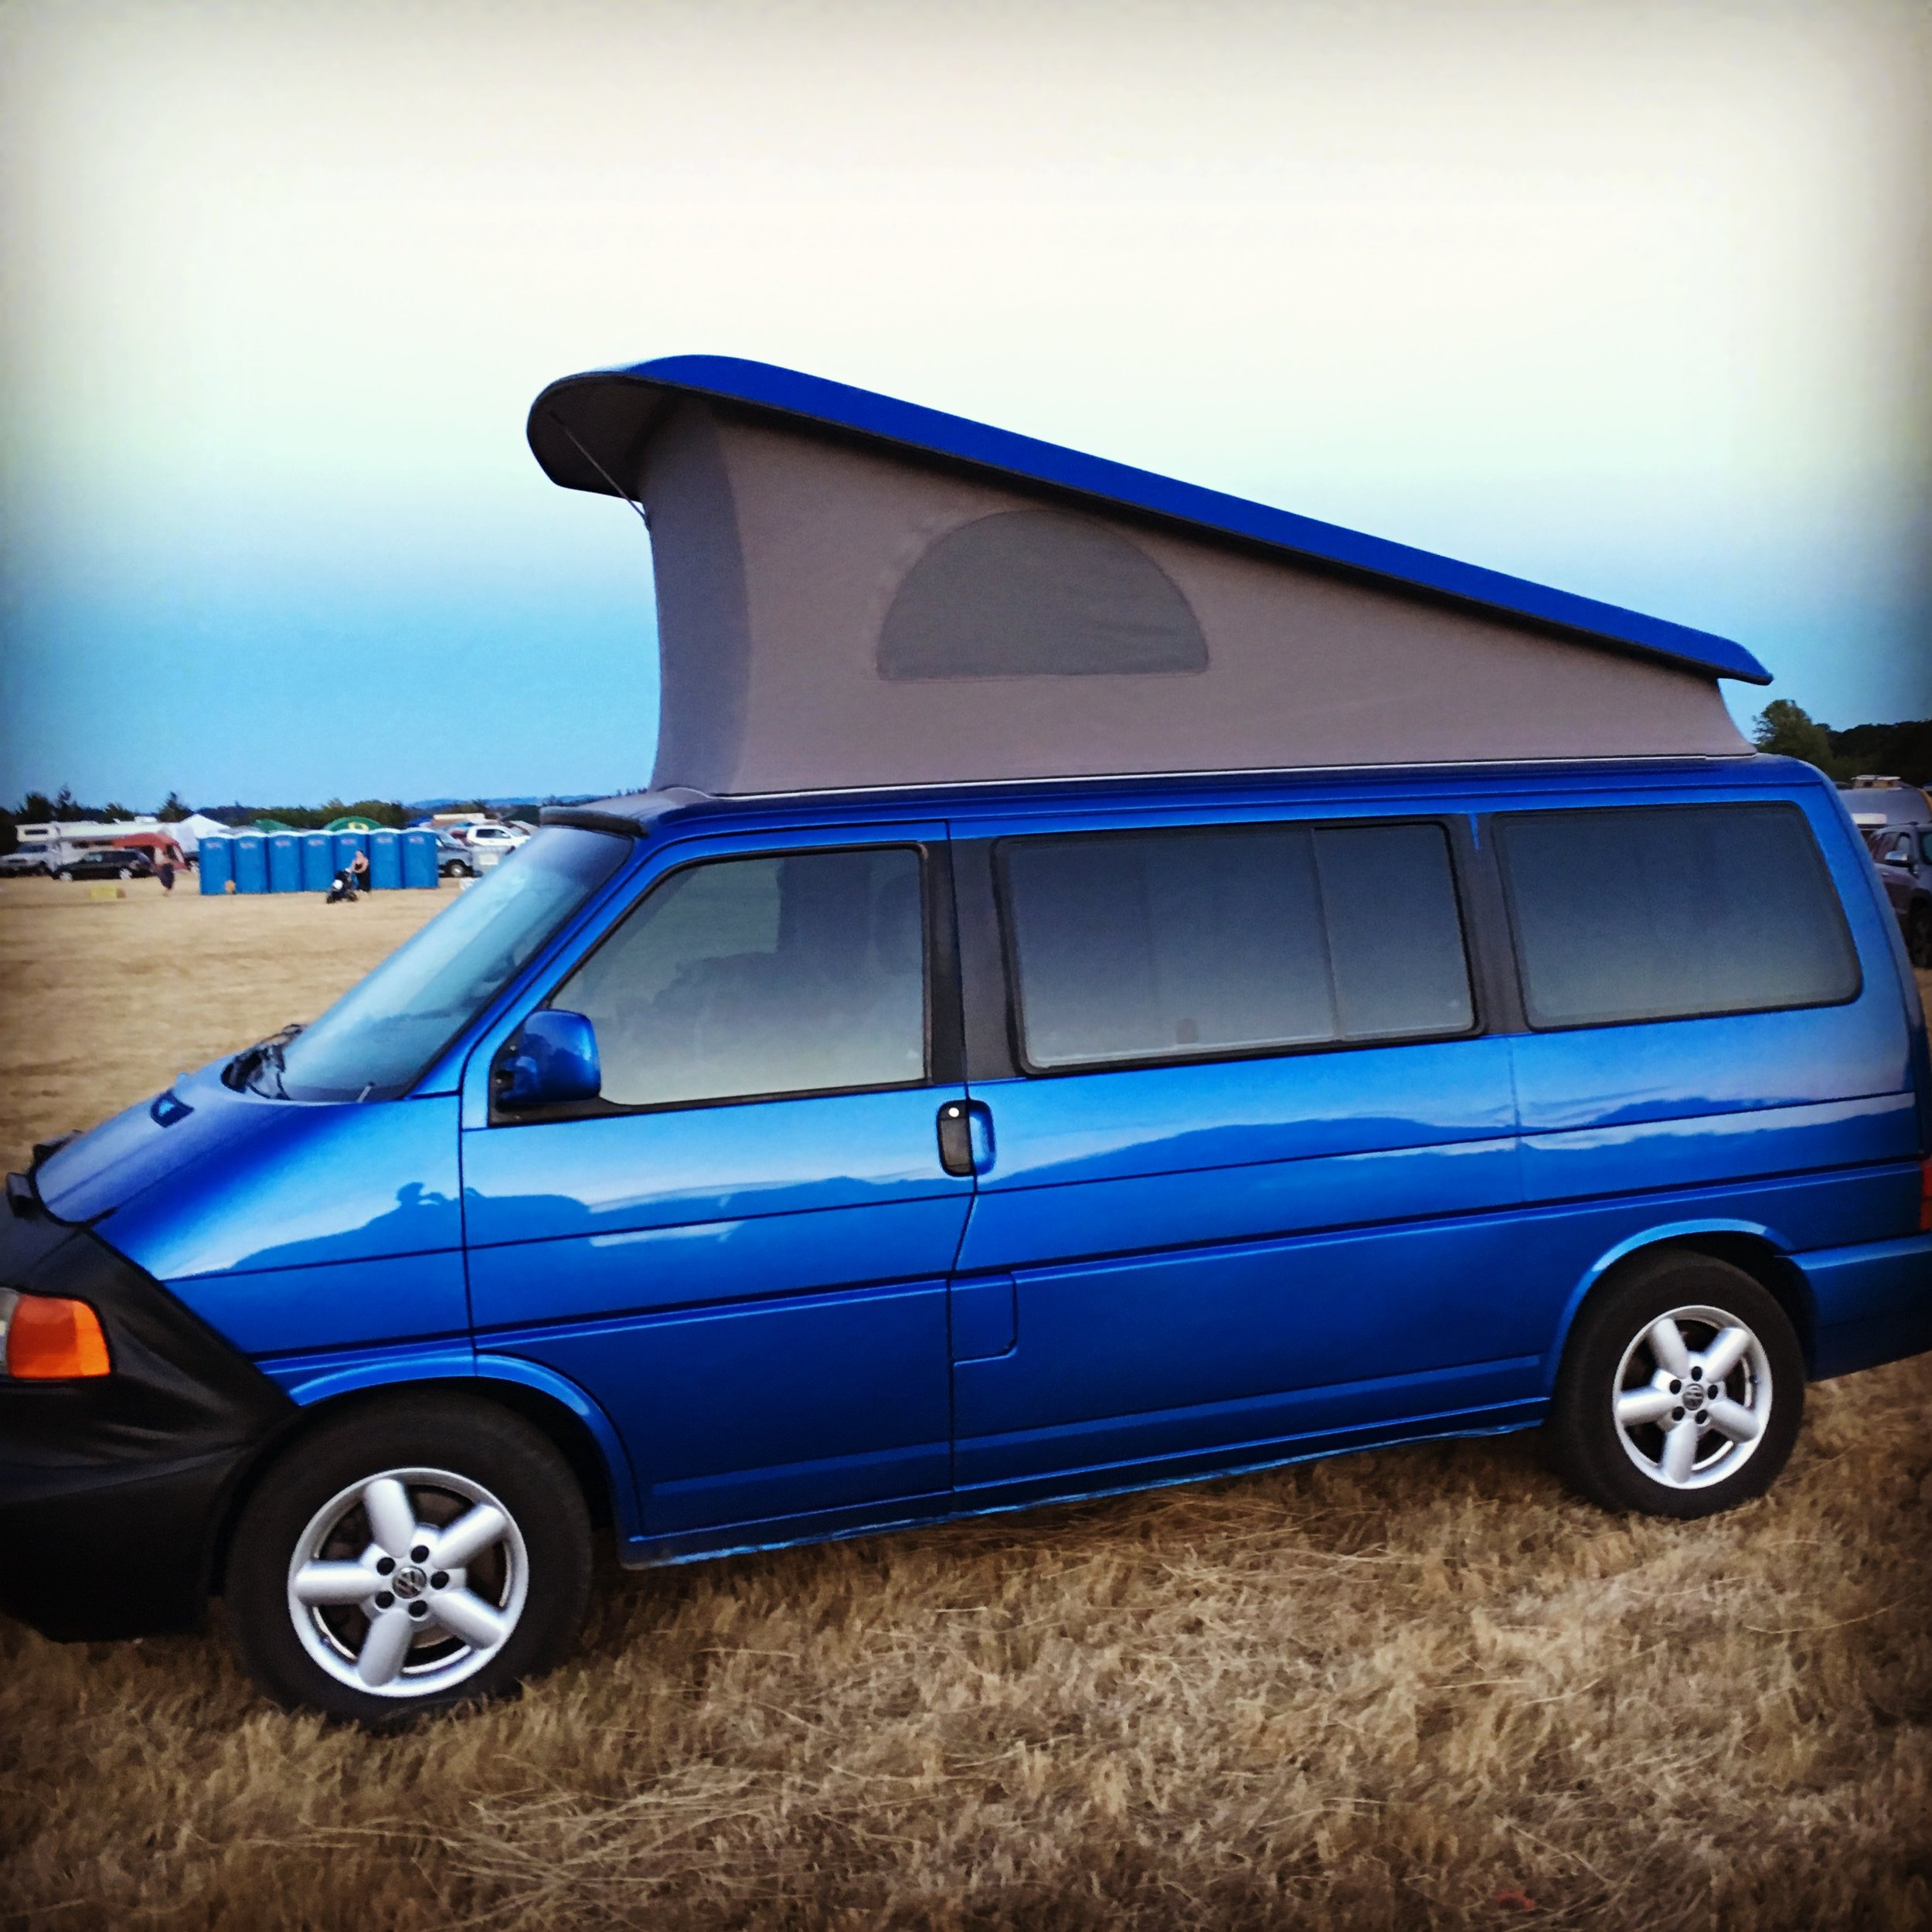 VW Weekender Specs: - -Year – 2001-Guests – up to 4 (sleeping on bed and loft)/ 7 (total in cab driving)-Engine – 204 Horsepower 2.8 L V6-Transmission – Automatic-Length – 15 1/2 feet-Beds – Queen and Full-Gas - Premium Unleaded-Pull Down Queen Bed-Pop-Top with Sleeping Loft-Bluetooth stereo system-Pull-out Interior Table-Under Seat Battery Powered Cooler-Privacy Curtains-Interior Lighting